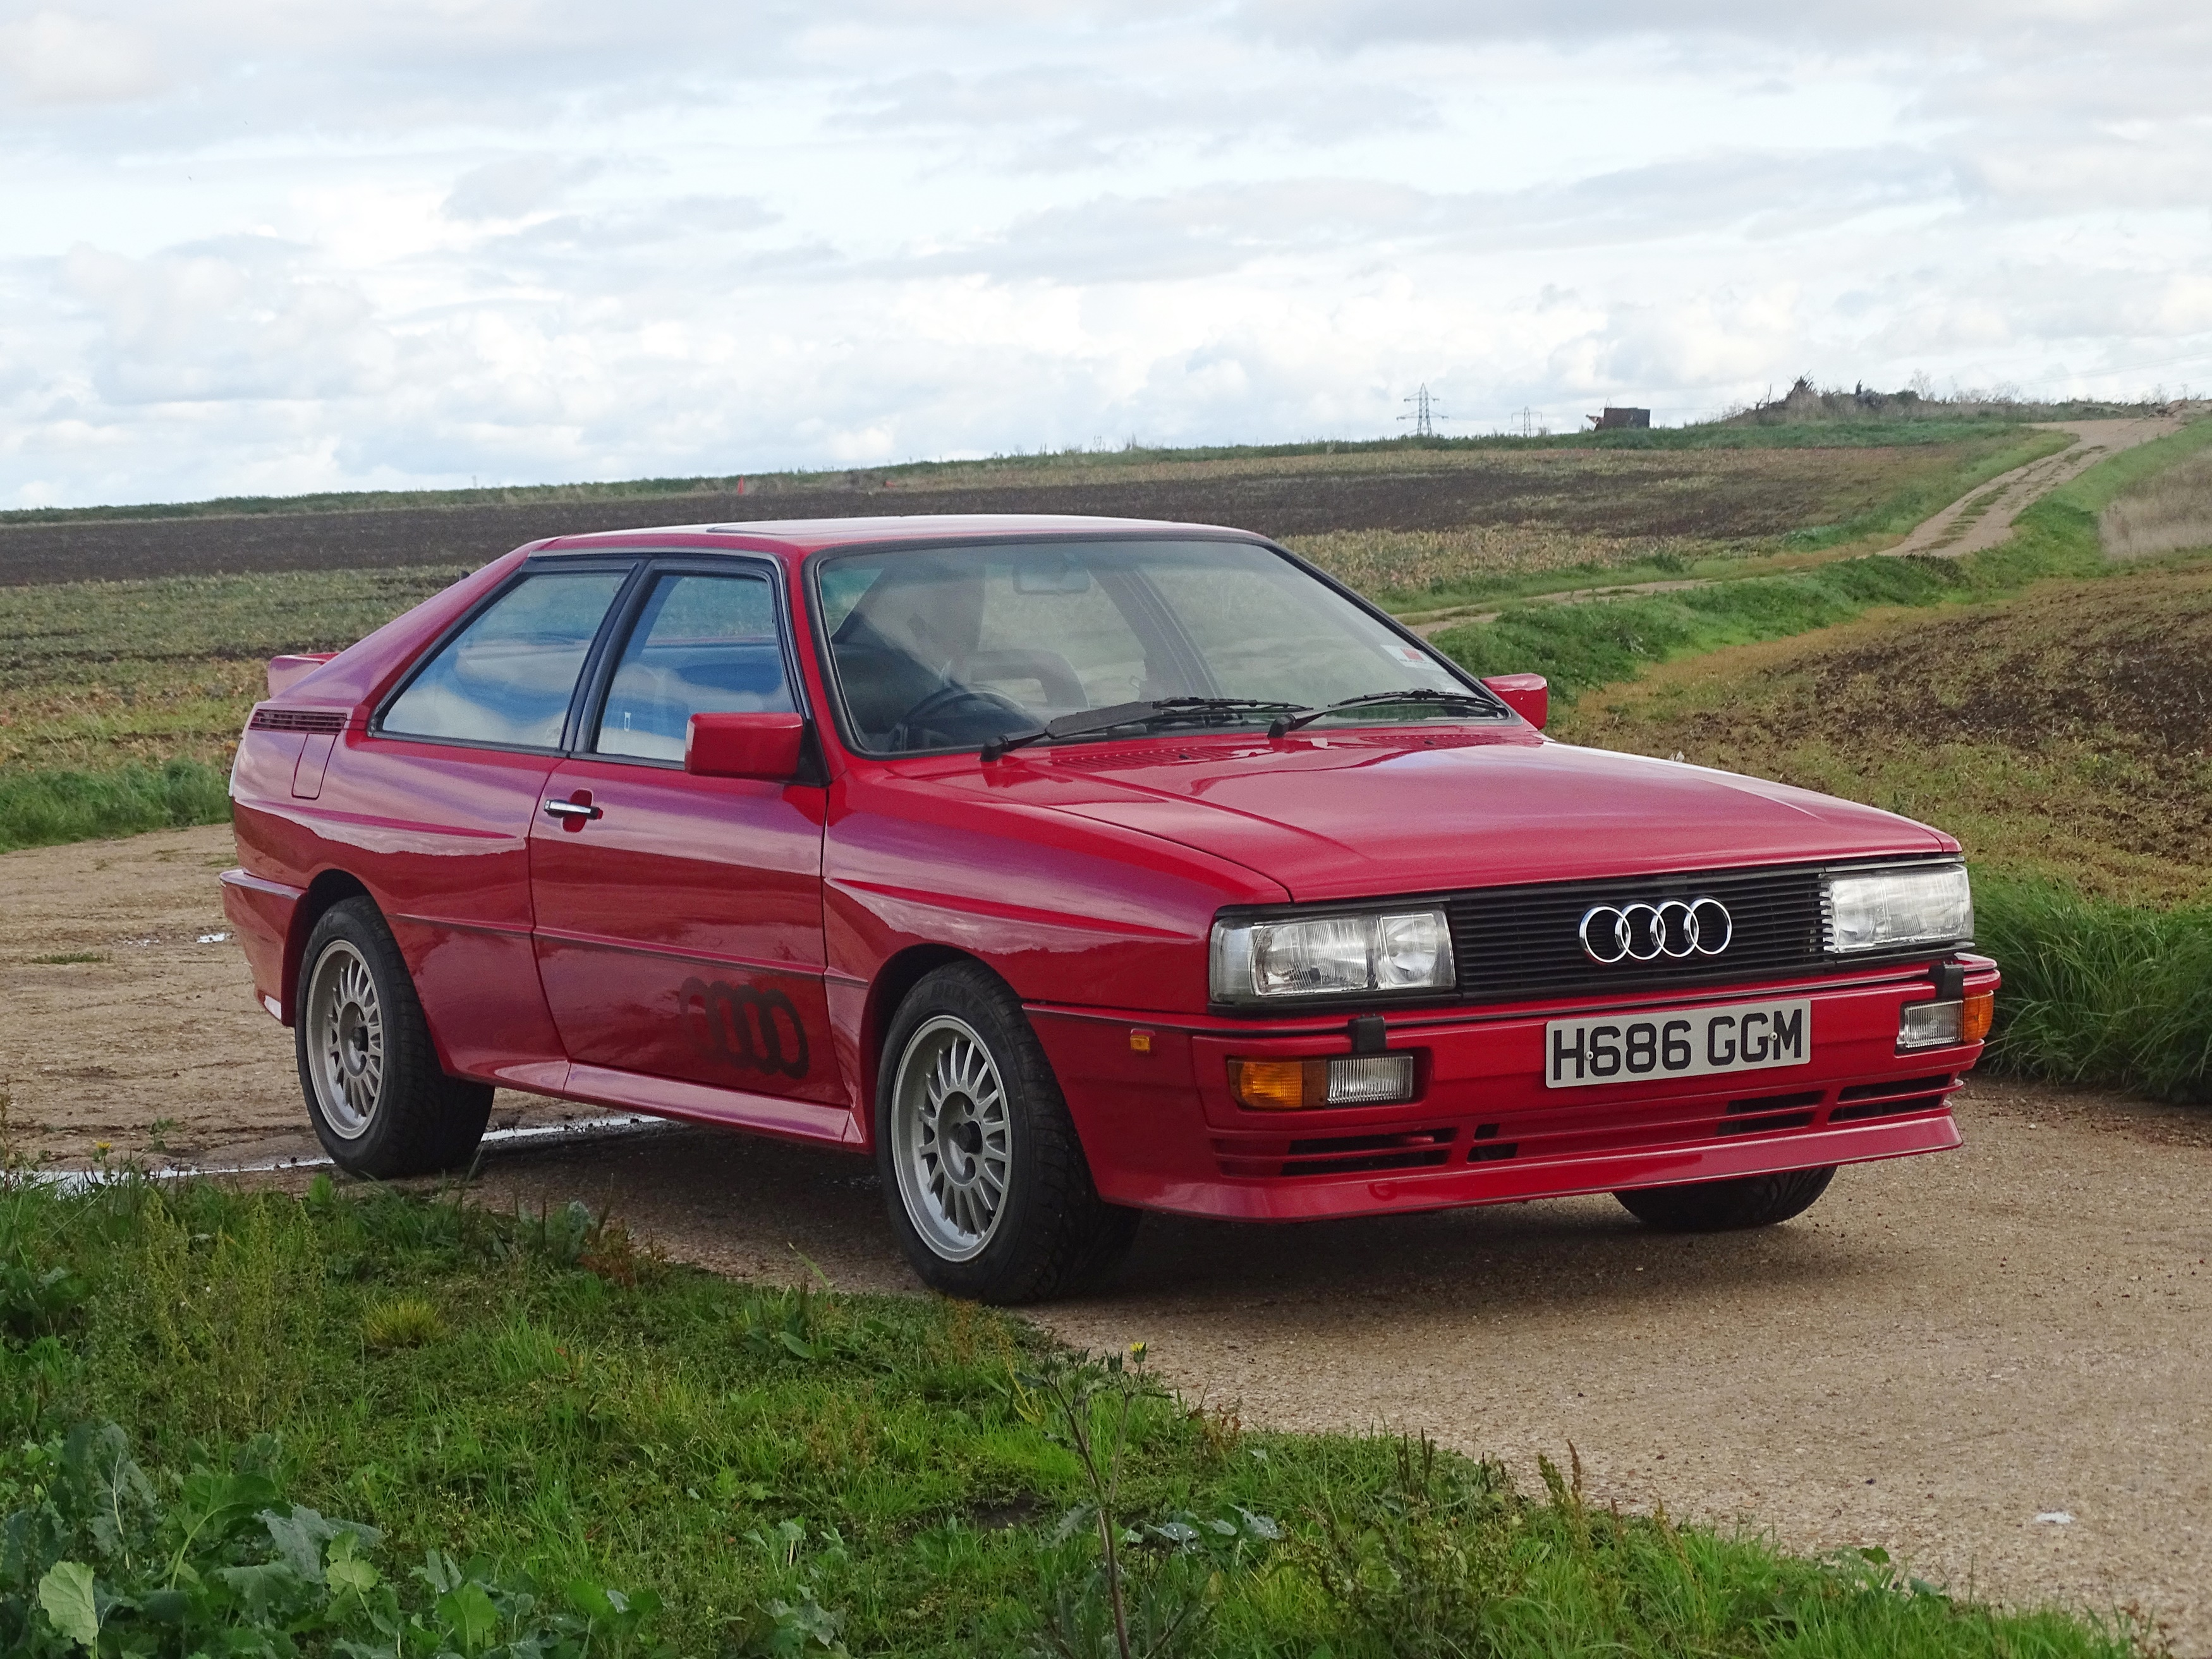 1990 Audi UR Quattro 2.2 Turbo RR 20V One of only 295 RHD 20V Models Produced